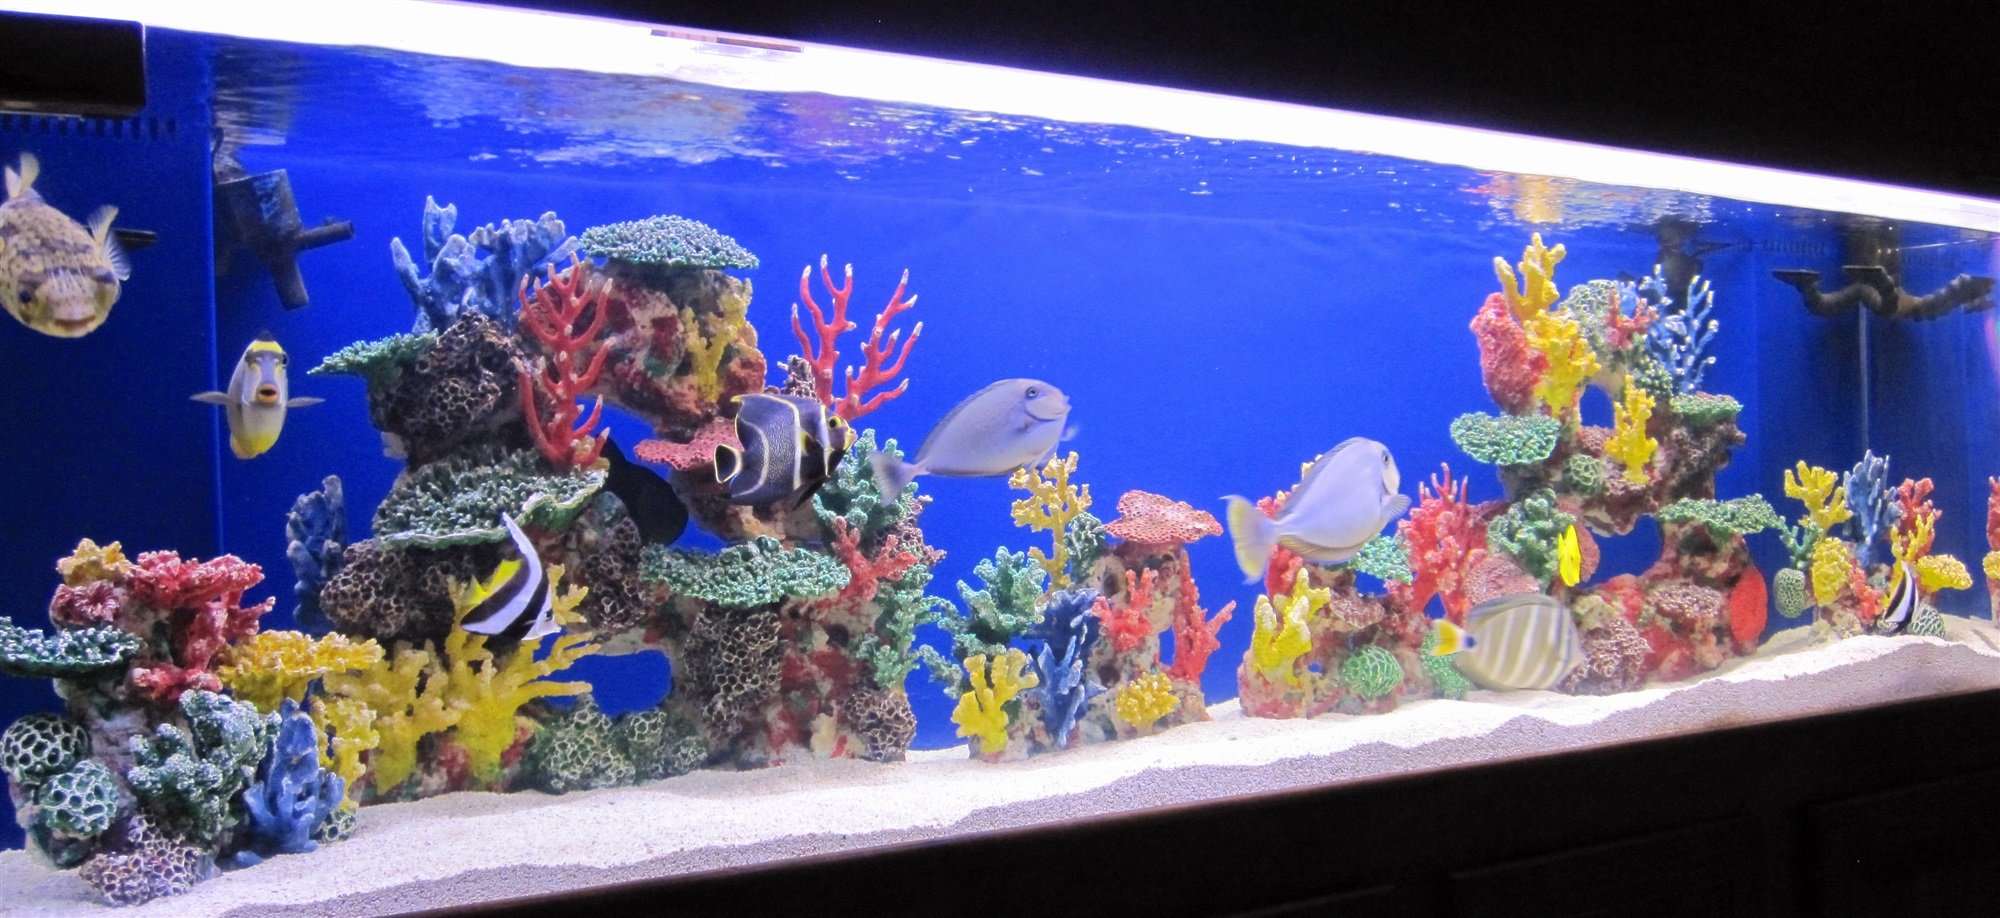 Instant Reef DM058 Artificial Coral Inserts Decor, Fake Coral Reef Decorations for Colorful Freshwater Fish Aquariums, Marine and Saltwater Fish Tanks 2